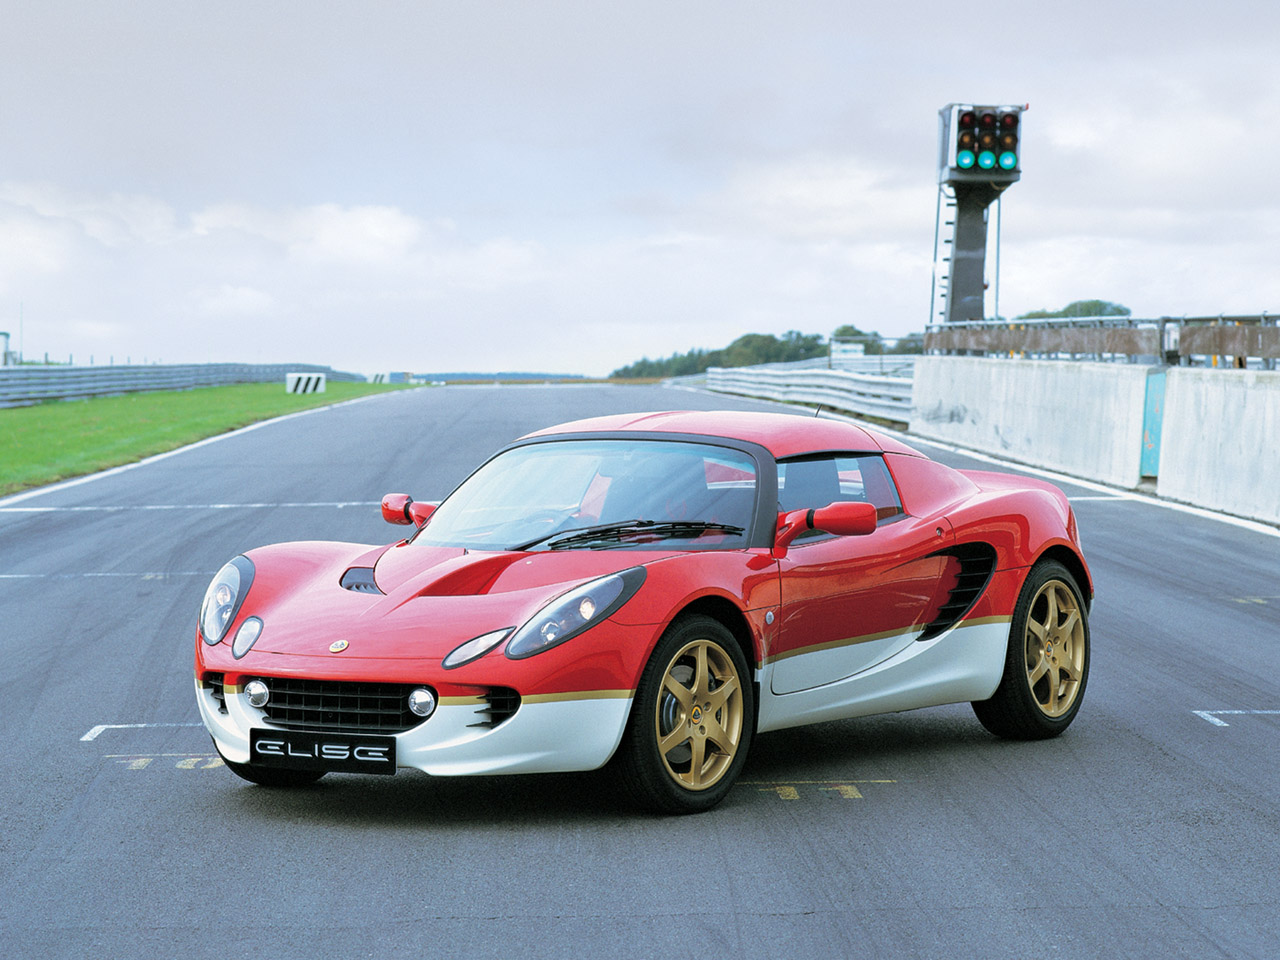 Livree Lotus Lotus-Elise-Type-49-Red-White-Front-1280x960